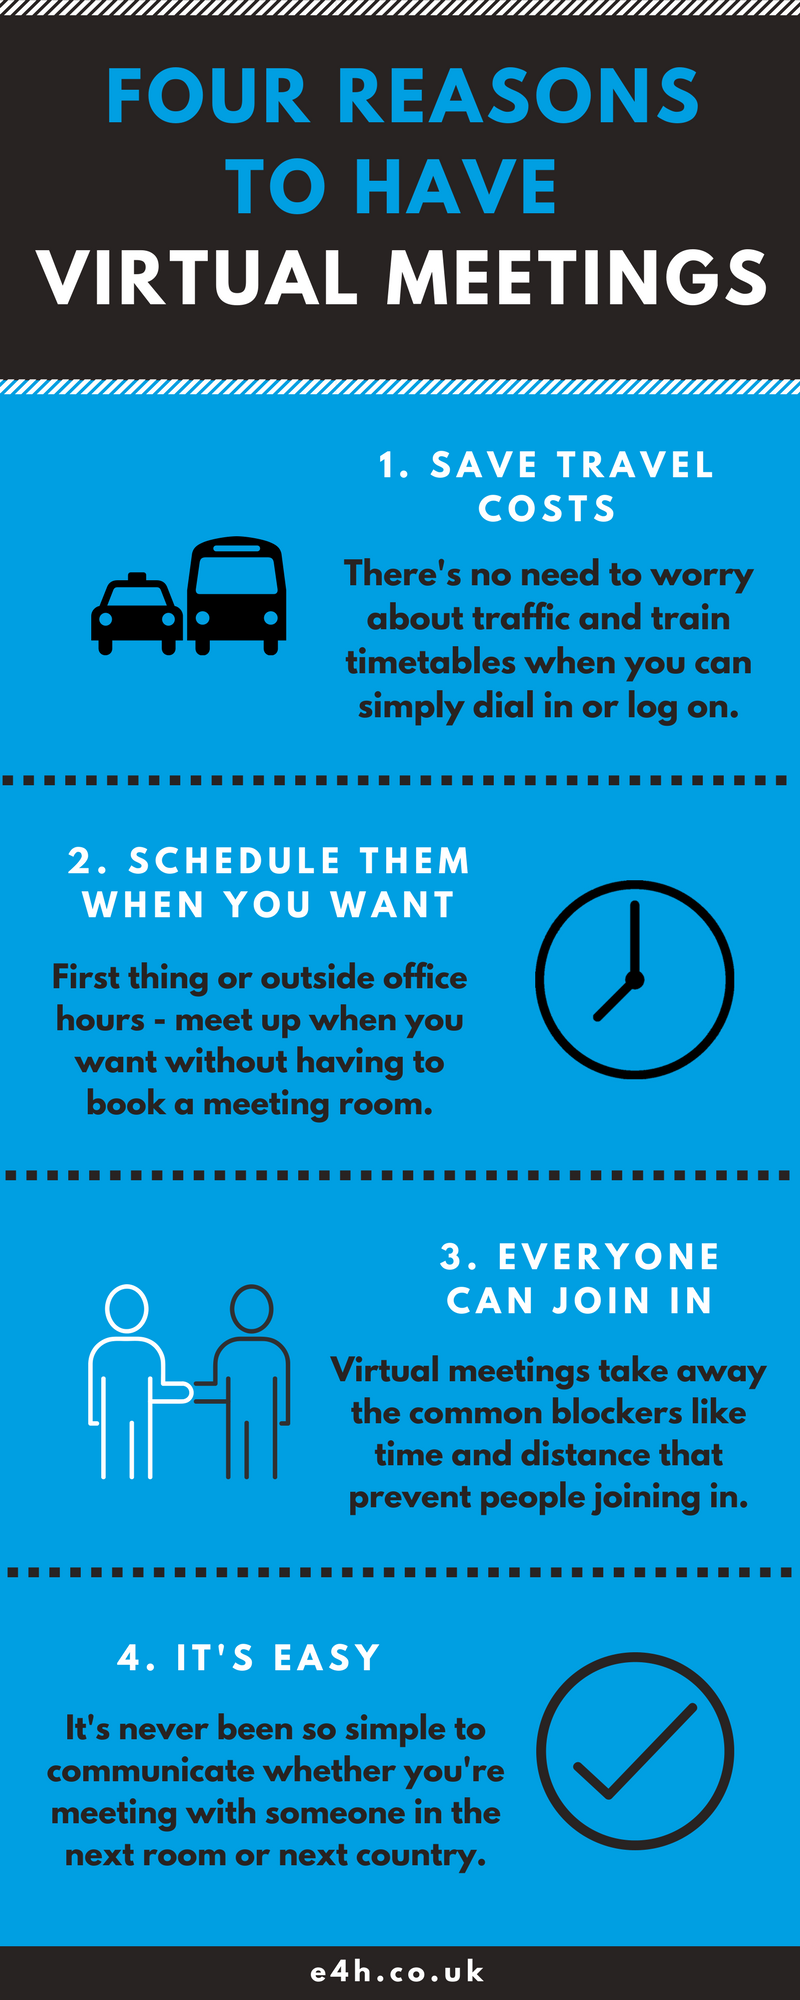 four reasons to have virtual meetings